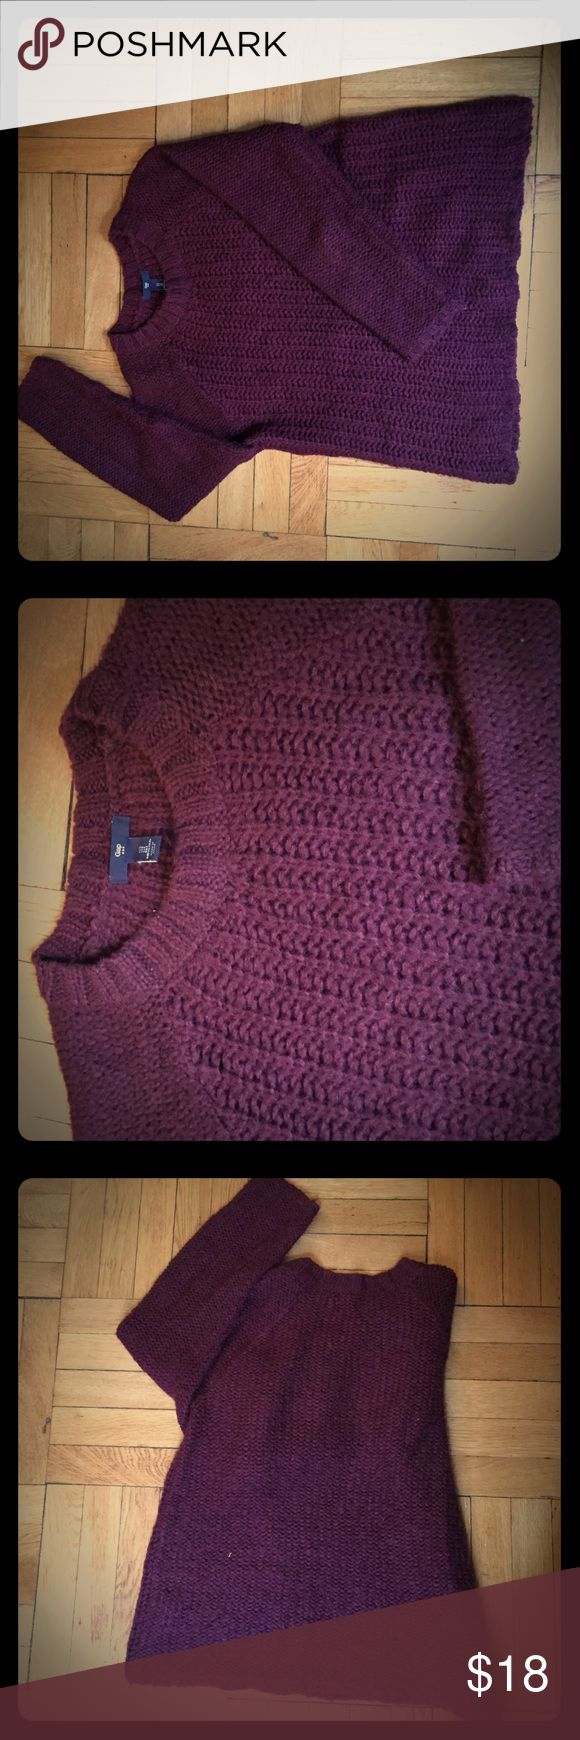 GAP chunky knit maroon sweater Long sleeve chunky knit maroon sweater with flattering knit pattern in front and plain knit in back for nice fit. Hangs well, comfy & cute! GAP Sweaters Crew & Scoop Necks